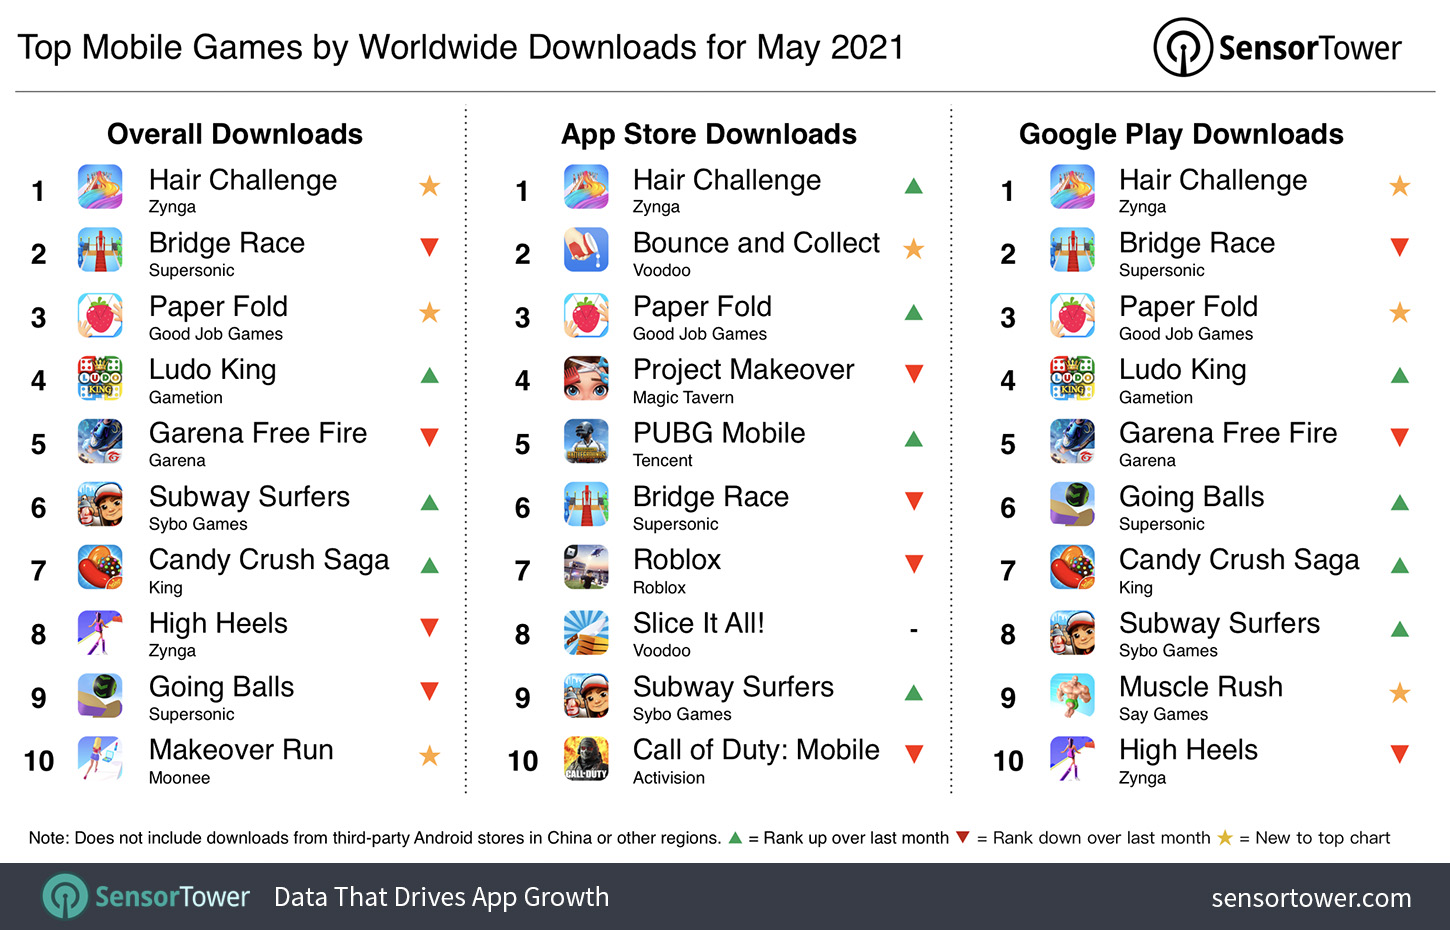 Top Mobile Games Worldwide for May 2021 by Downloads